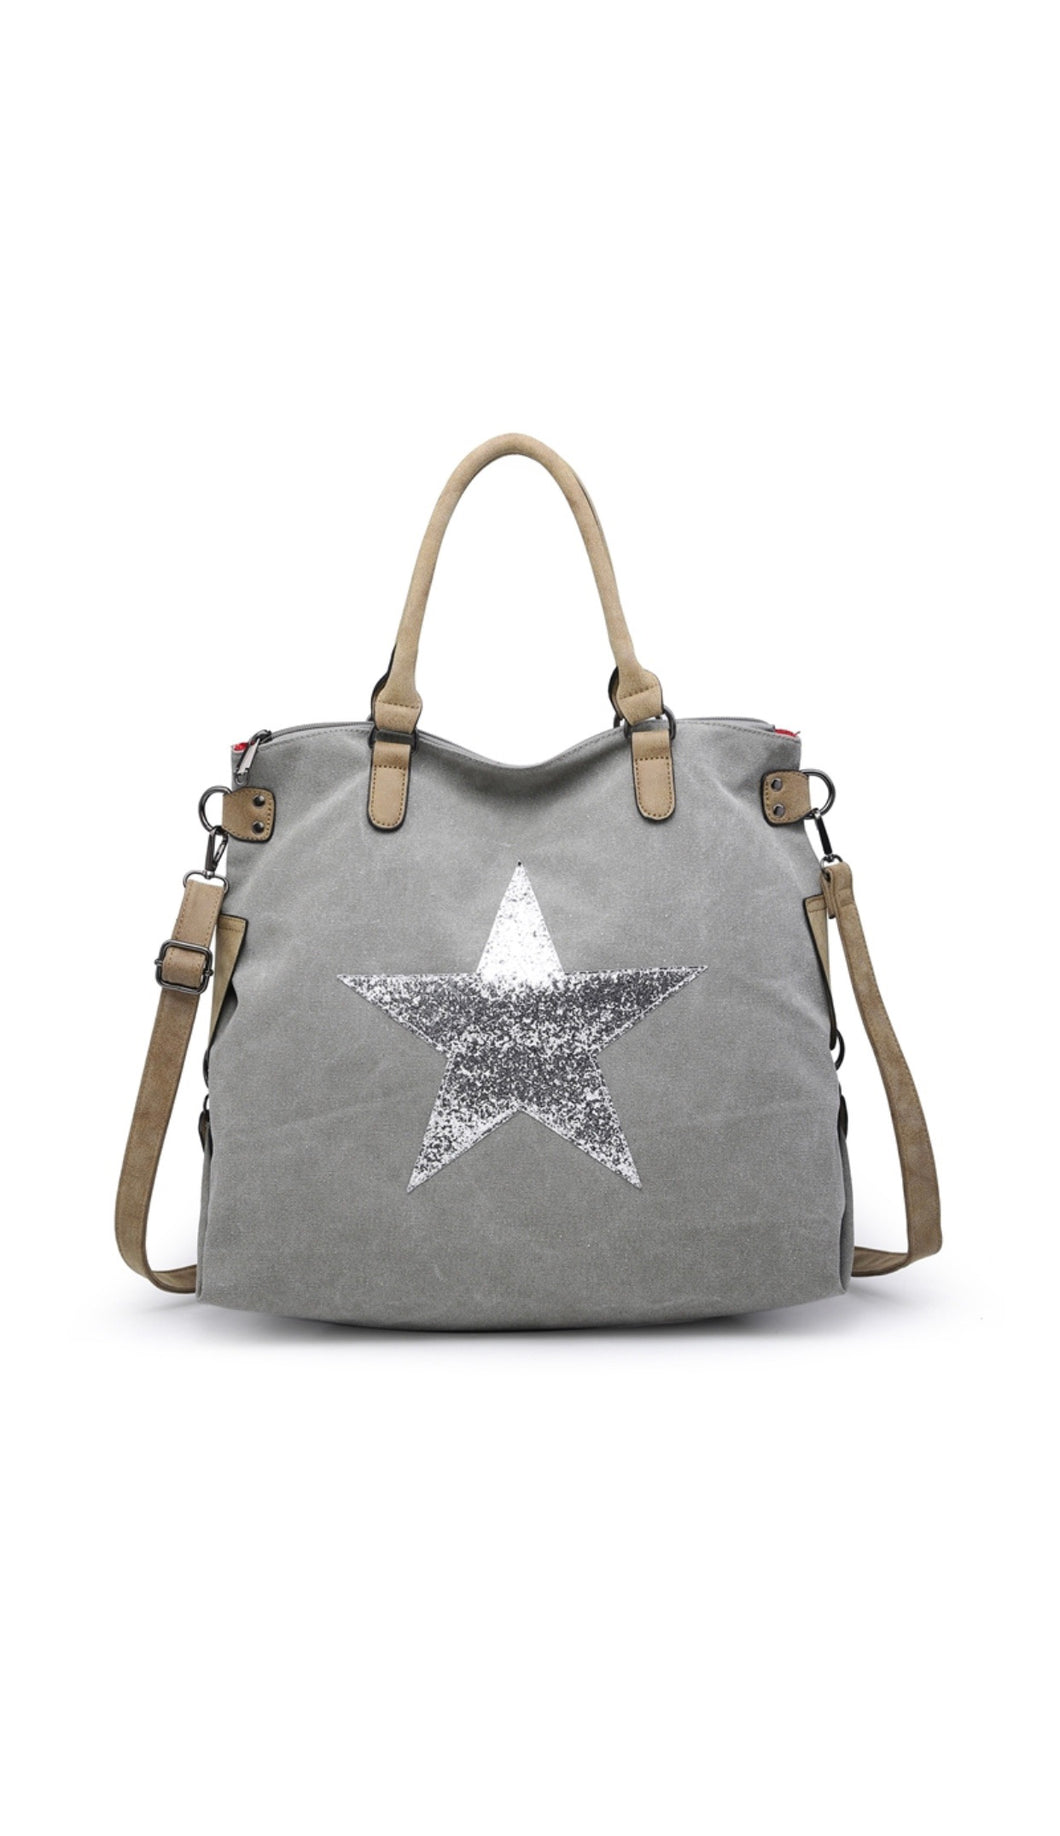 Light grey star bag with silver star - Large size